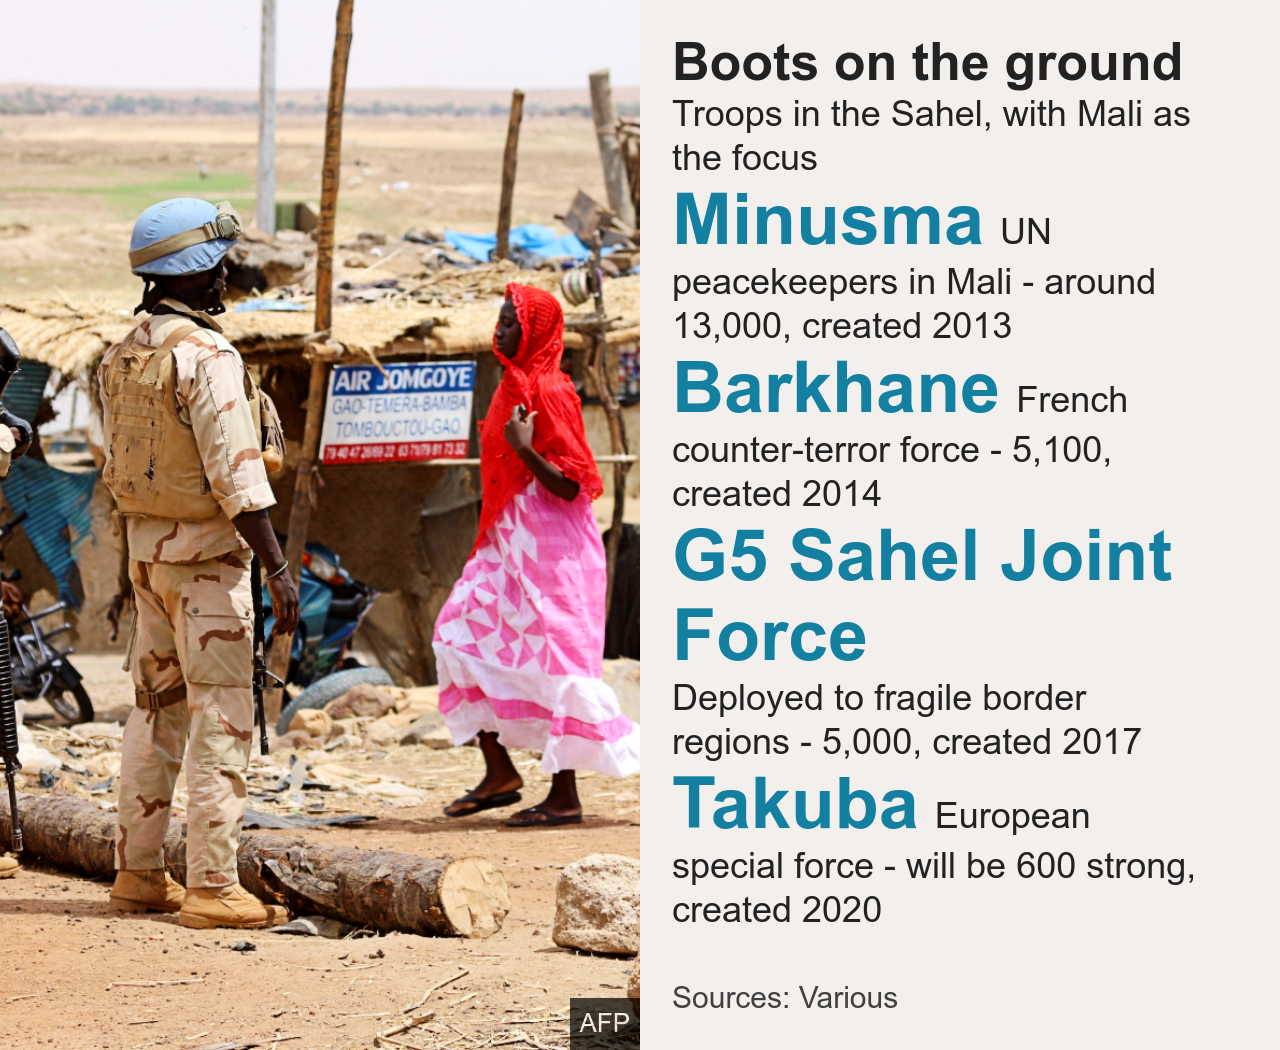 Boots on the ground in the Sahel: Minusma UN peacekeepers in Mali - around 13,000, created 2013, Barkhane French counter-terror force - 5,100, created 2014, G5 Sahel Joint Force Deployed to fragile border regions - 5,000, created 2017, Takuba European special force - will be 600 strong, created 2020